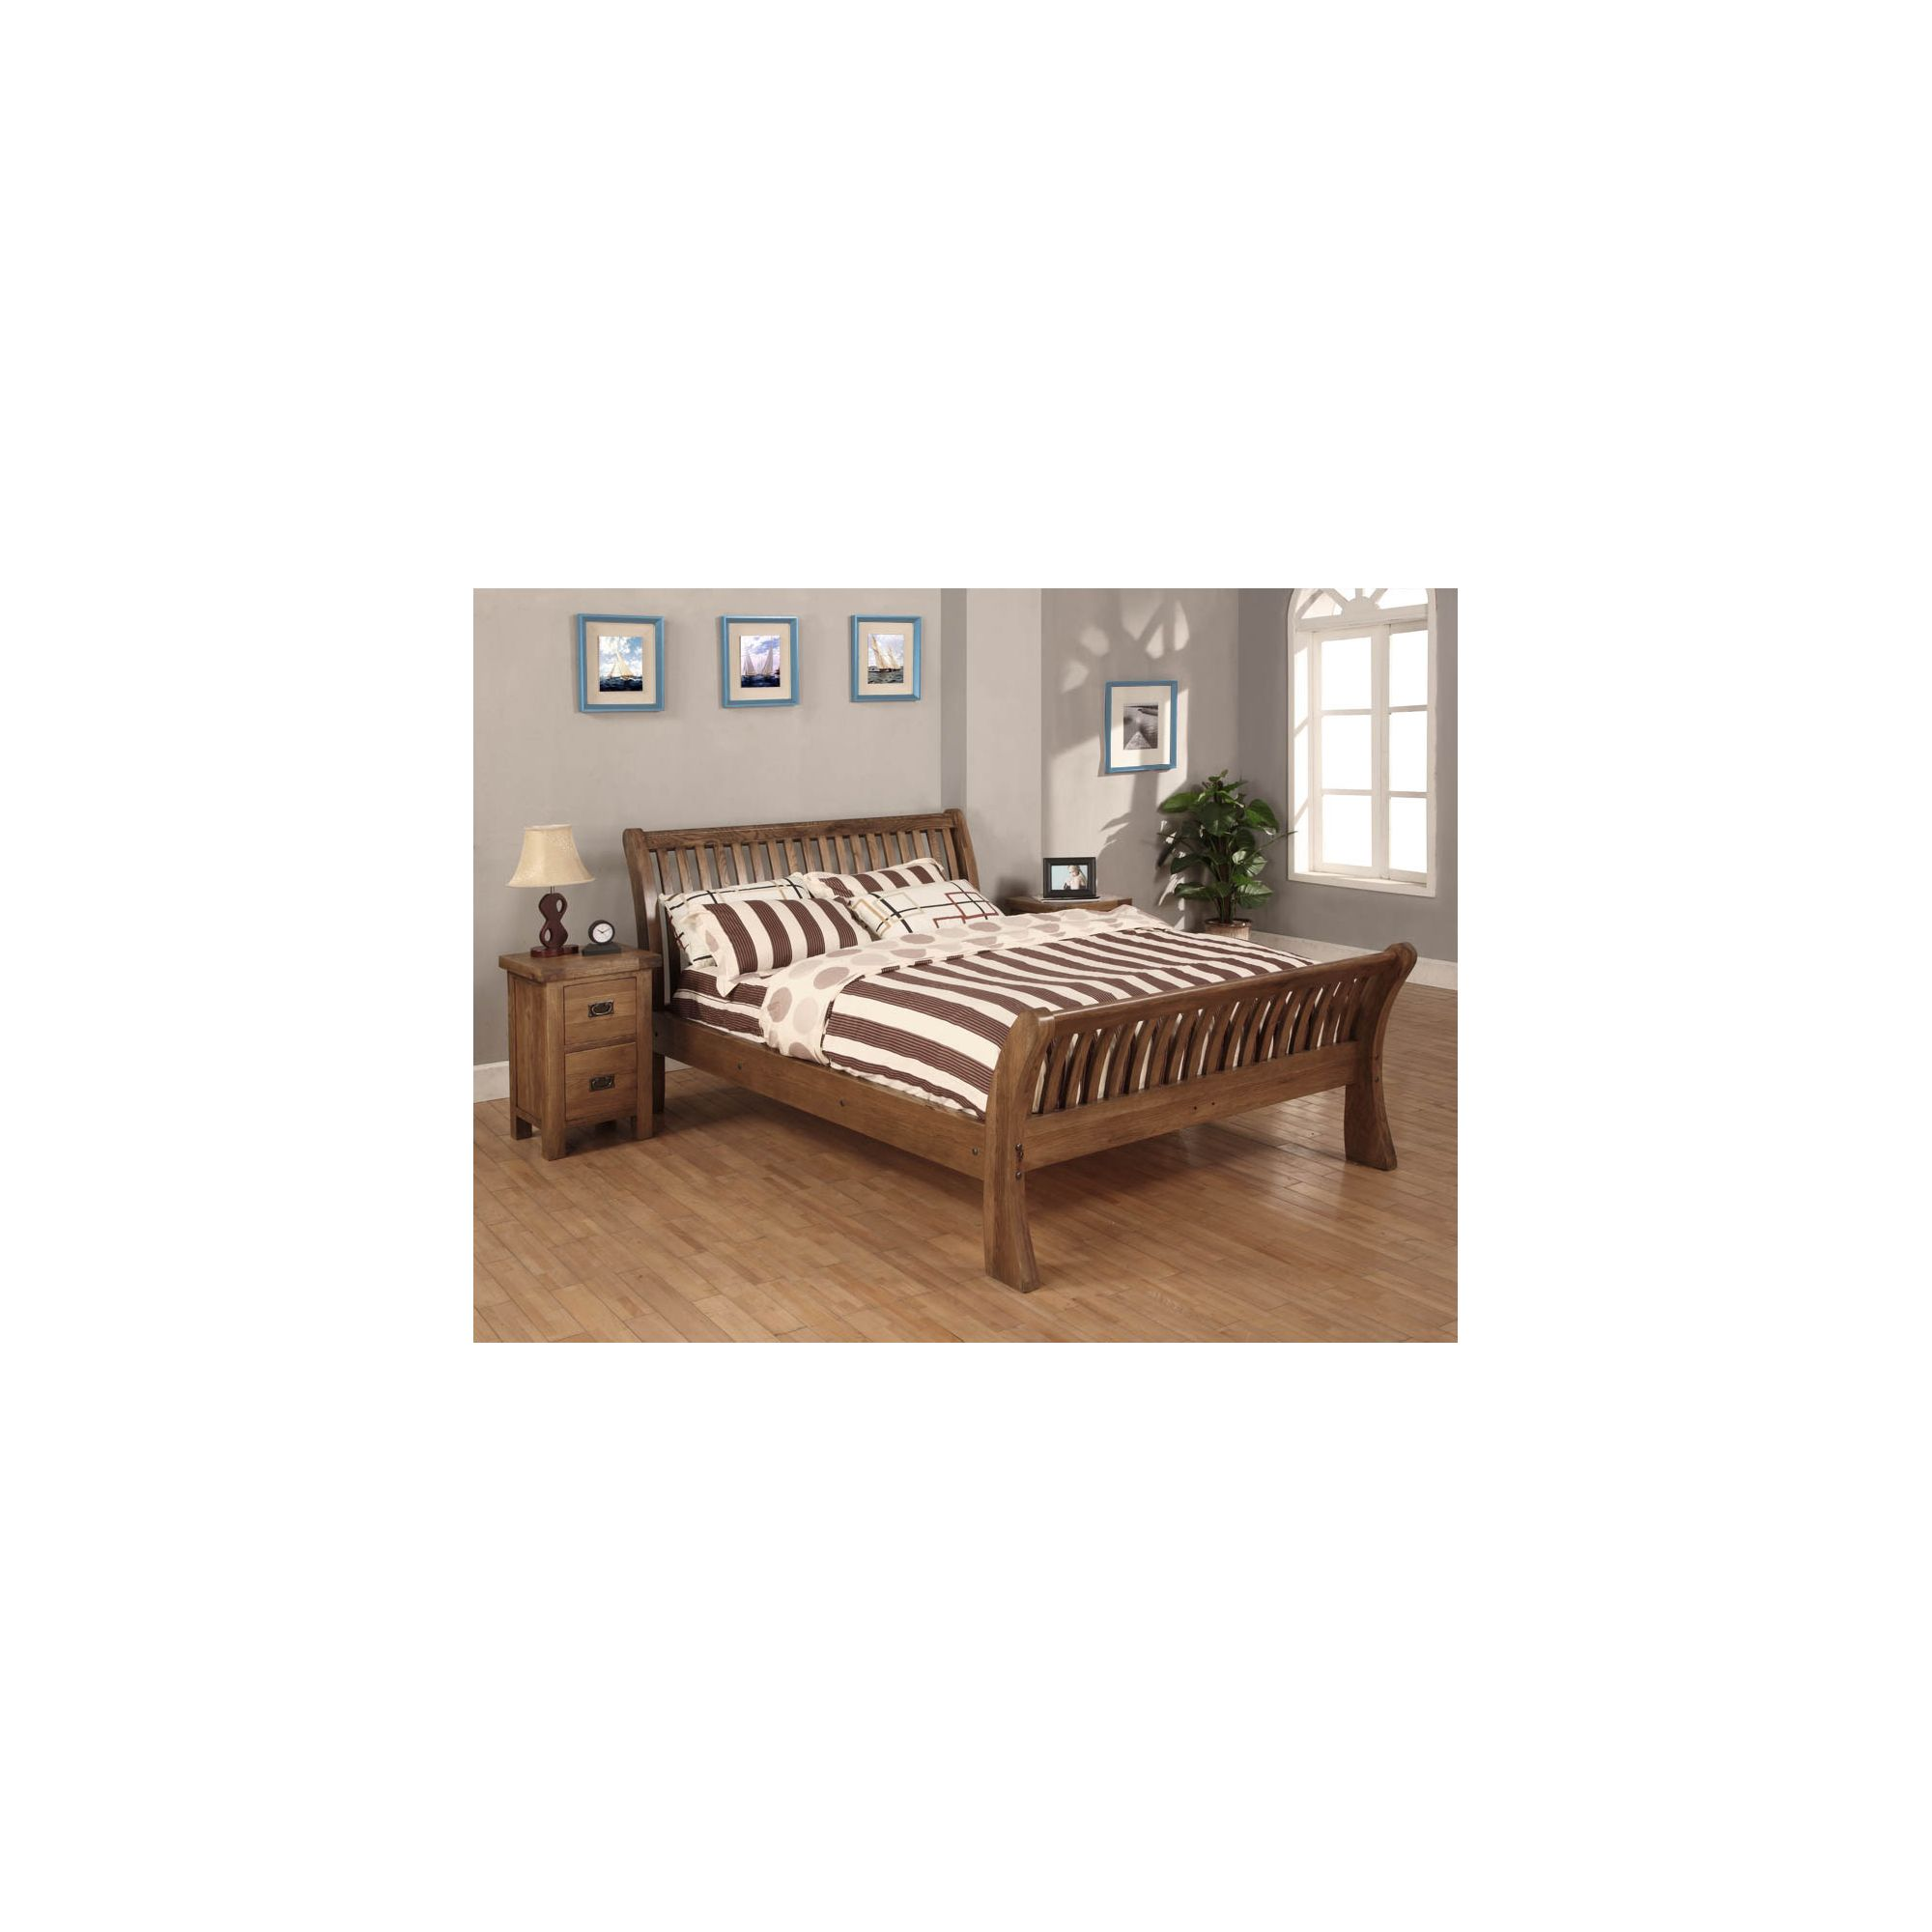 Hawkshead Brooklyn Bed Frame - 5' King at Tesco Direct